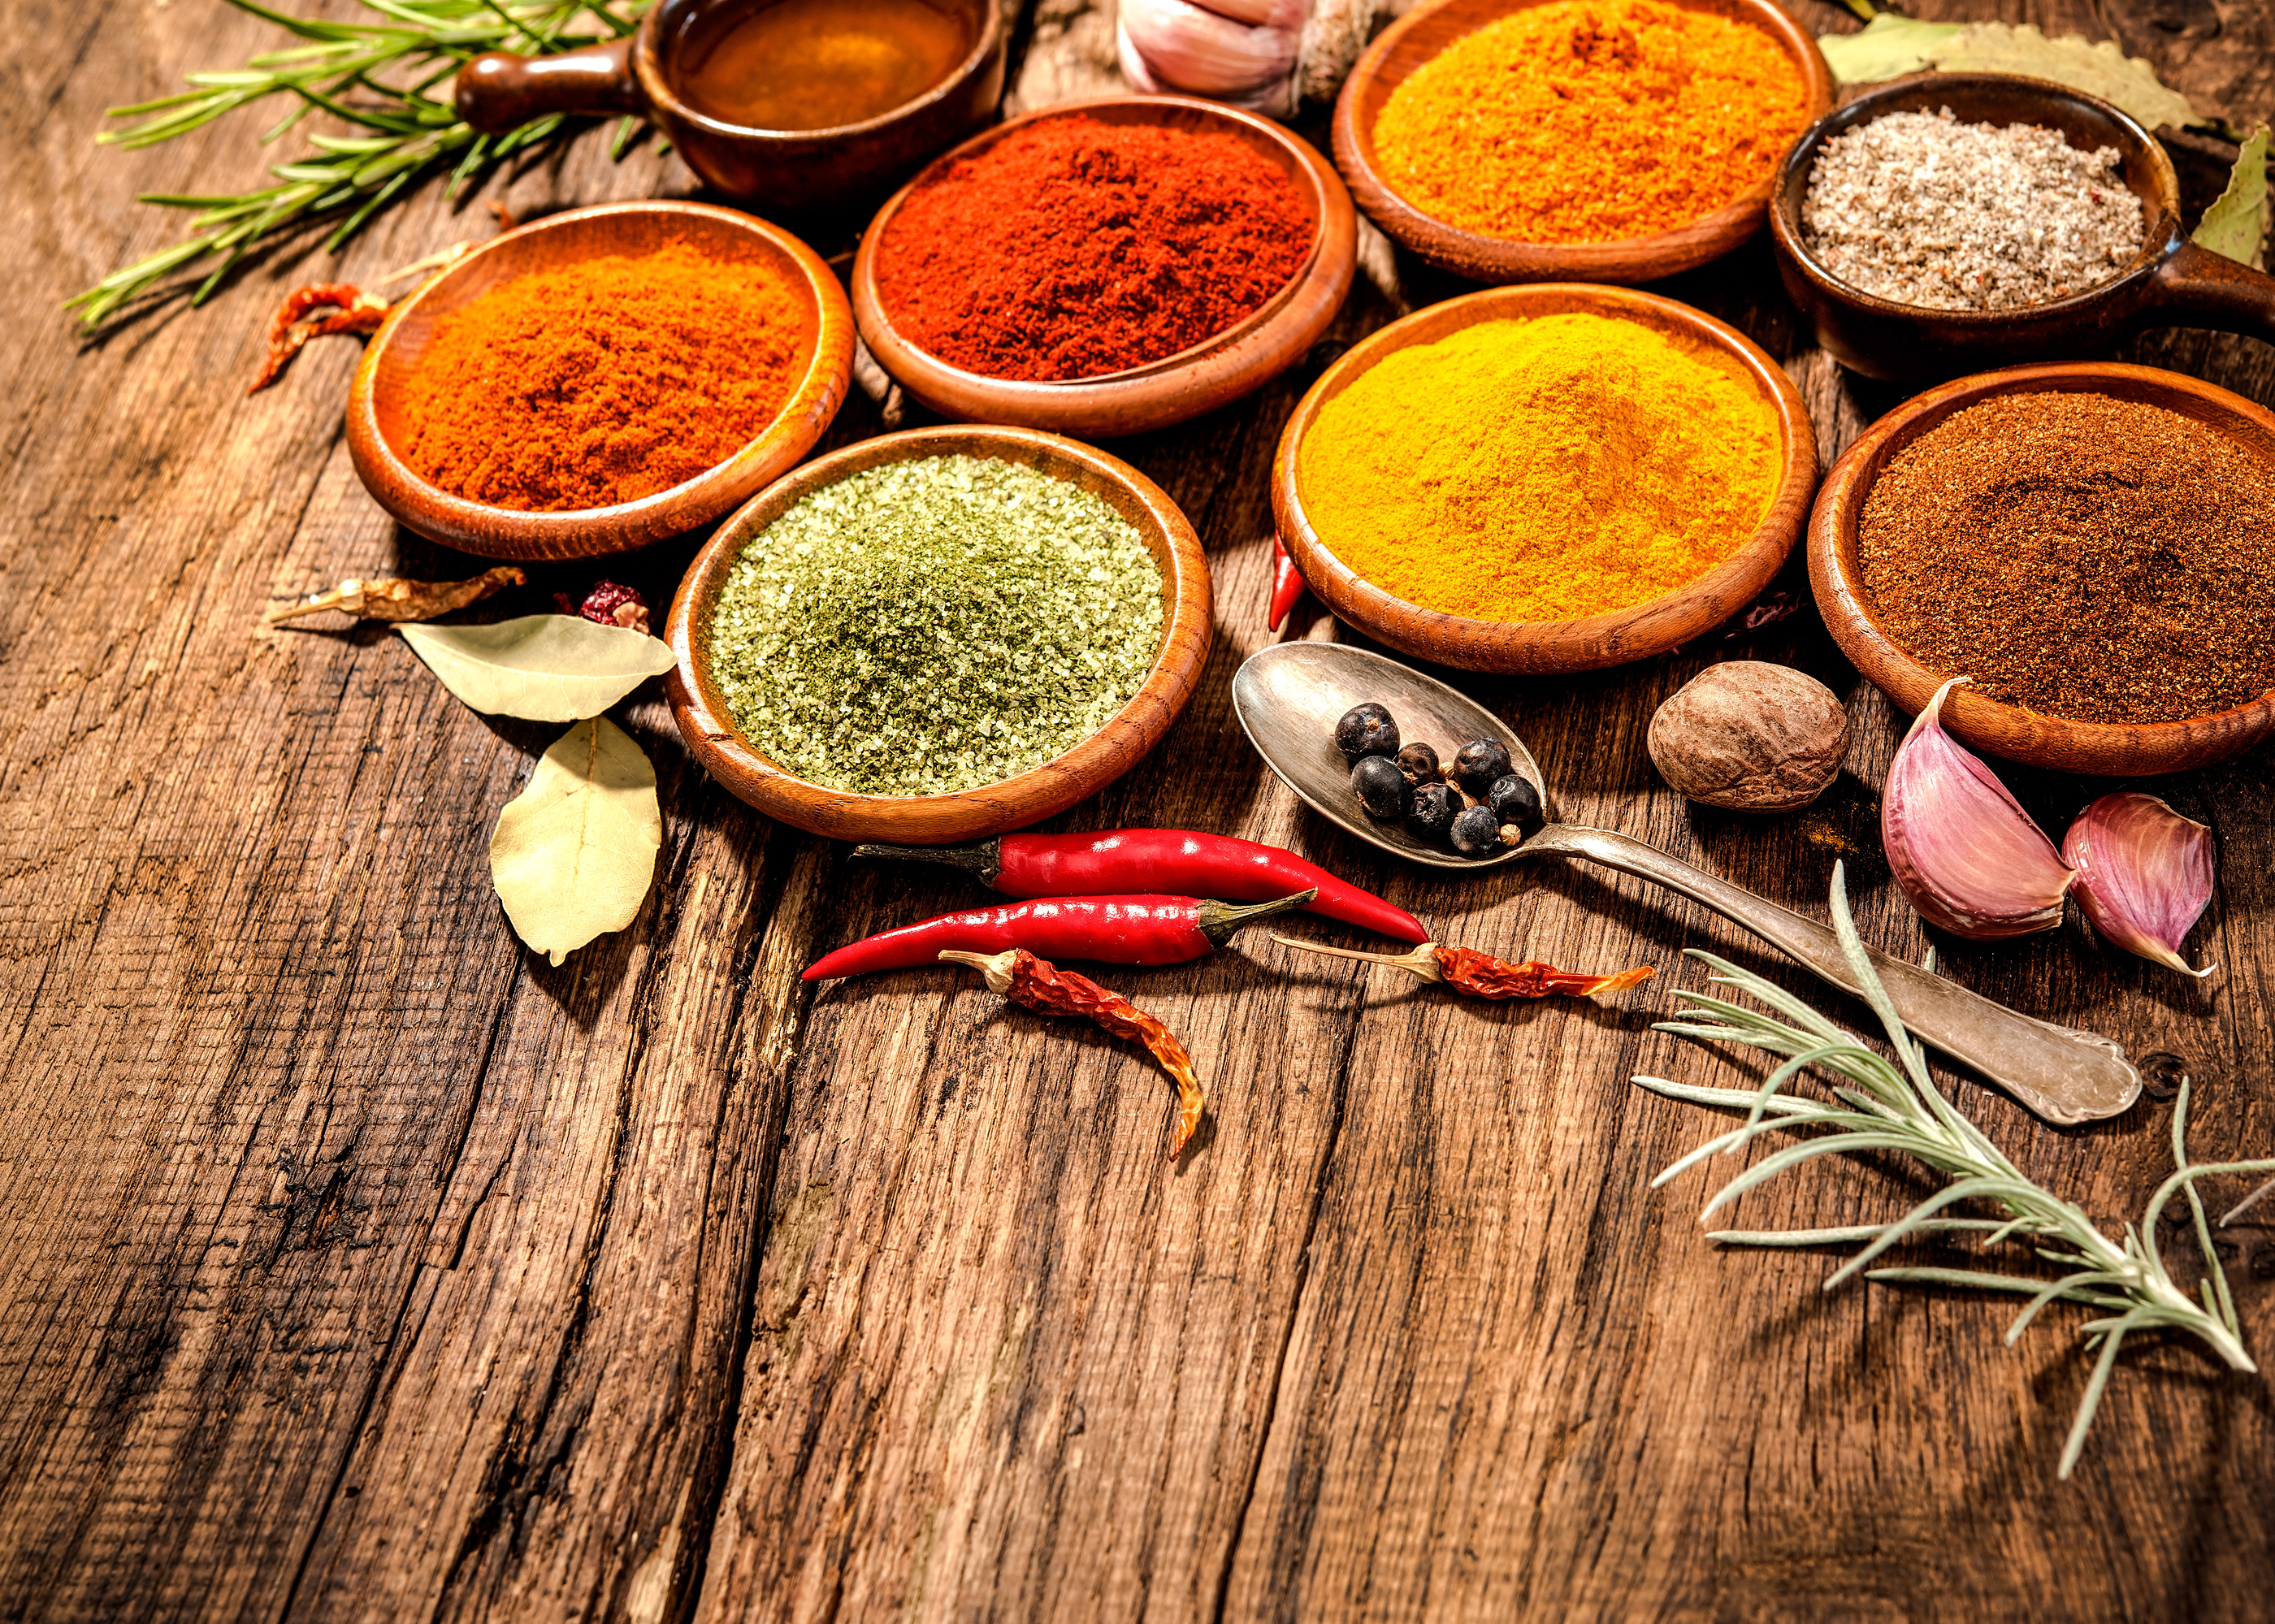 12 Superior Herbs And Spices To Fight The Battle Of The Bulge